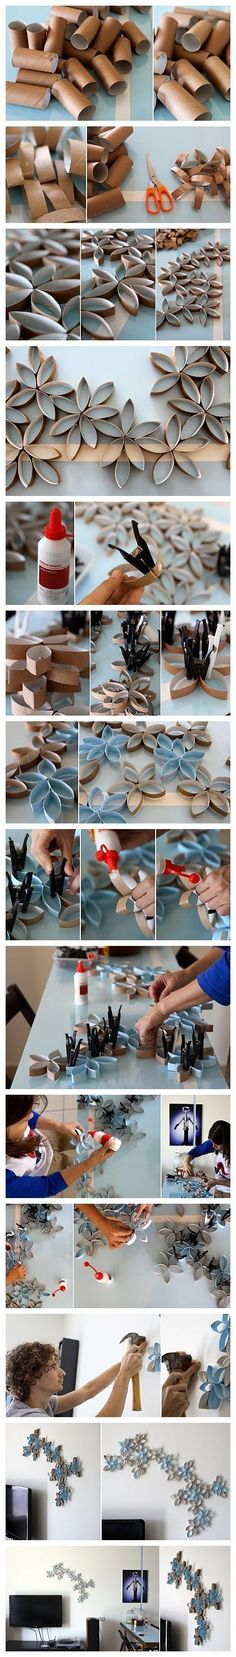 How to DIY toilet paper roll wall art project (Diy Paper Towel) Toilet Paper Roll Art, Rolled Paper Art, Toilet Roll Crafts, Wall Decor Crafts, Diy Wall Art, Room Decorations, Paper Wall Decor, Diy Decoration, 3d Wall